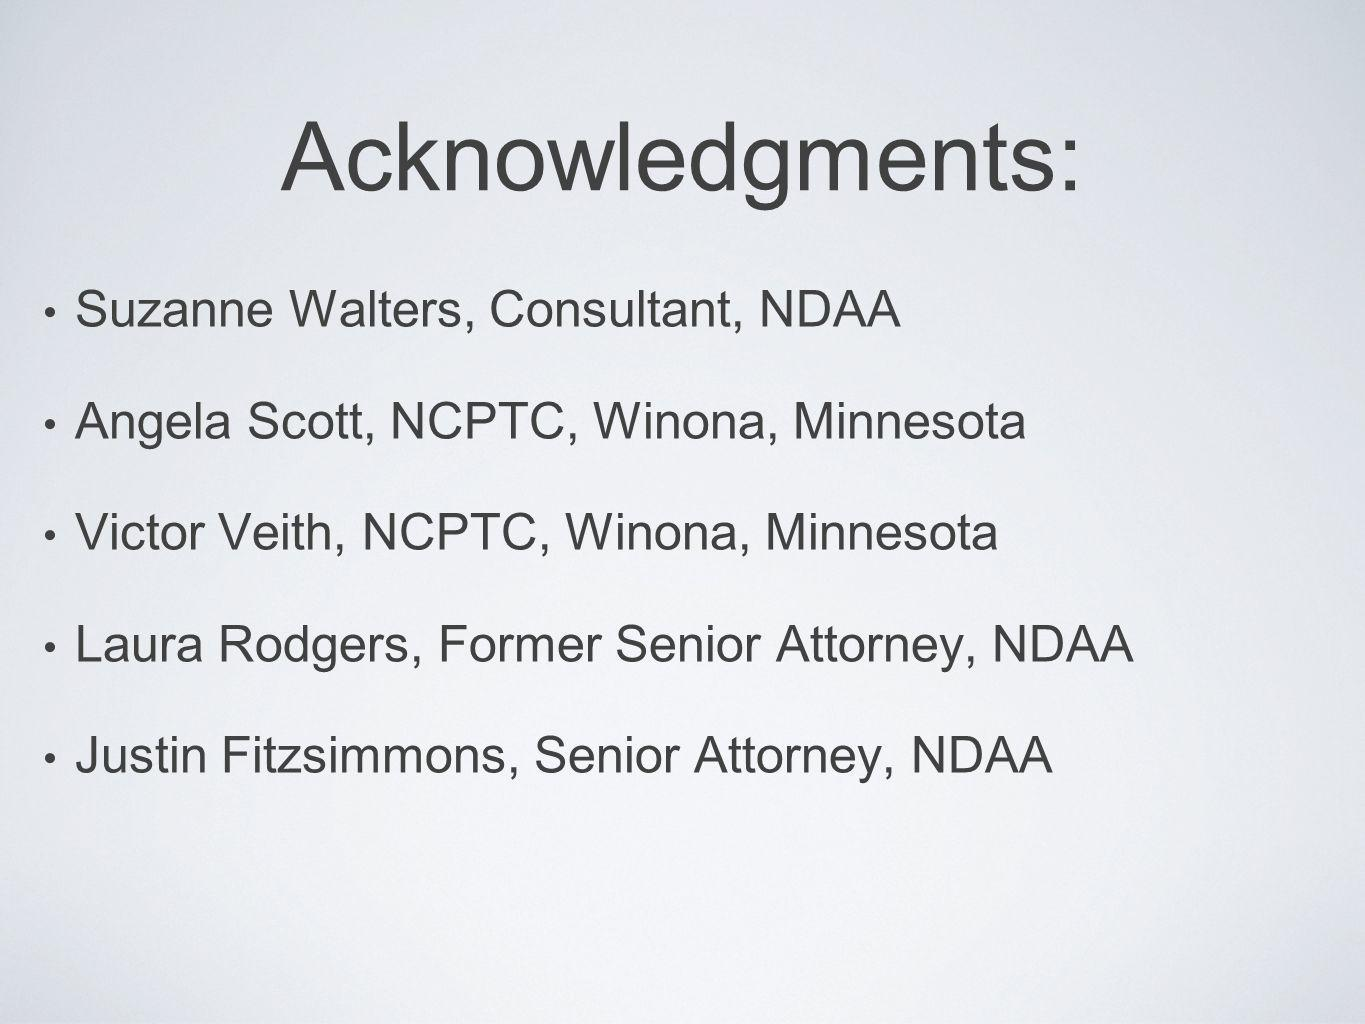 Acknowledgments: Suzanne Walters, Consultant, NDAA